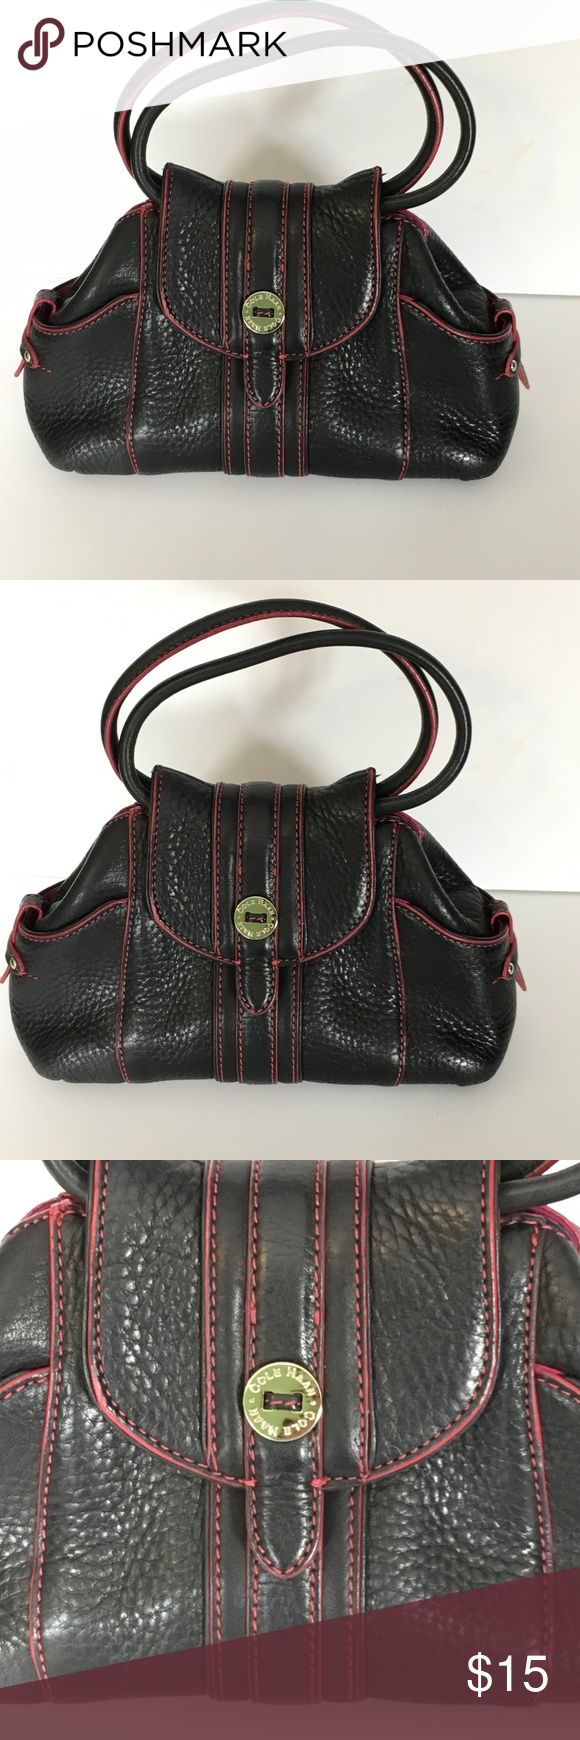 Small Cole Haan clutch purse black pink leather You are viewing a BEAUTIFUL Cole Haan purse This is a small clutch style purse The color is black with magenta pink stitching Magenta pink interior  Perfect for a night out to throw your wallet and phone in! Cole Haan Bags Clutches & Wristlets